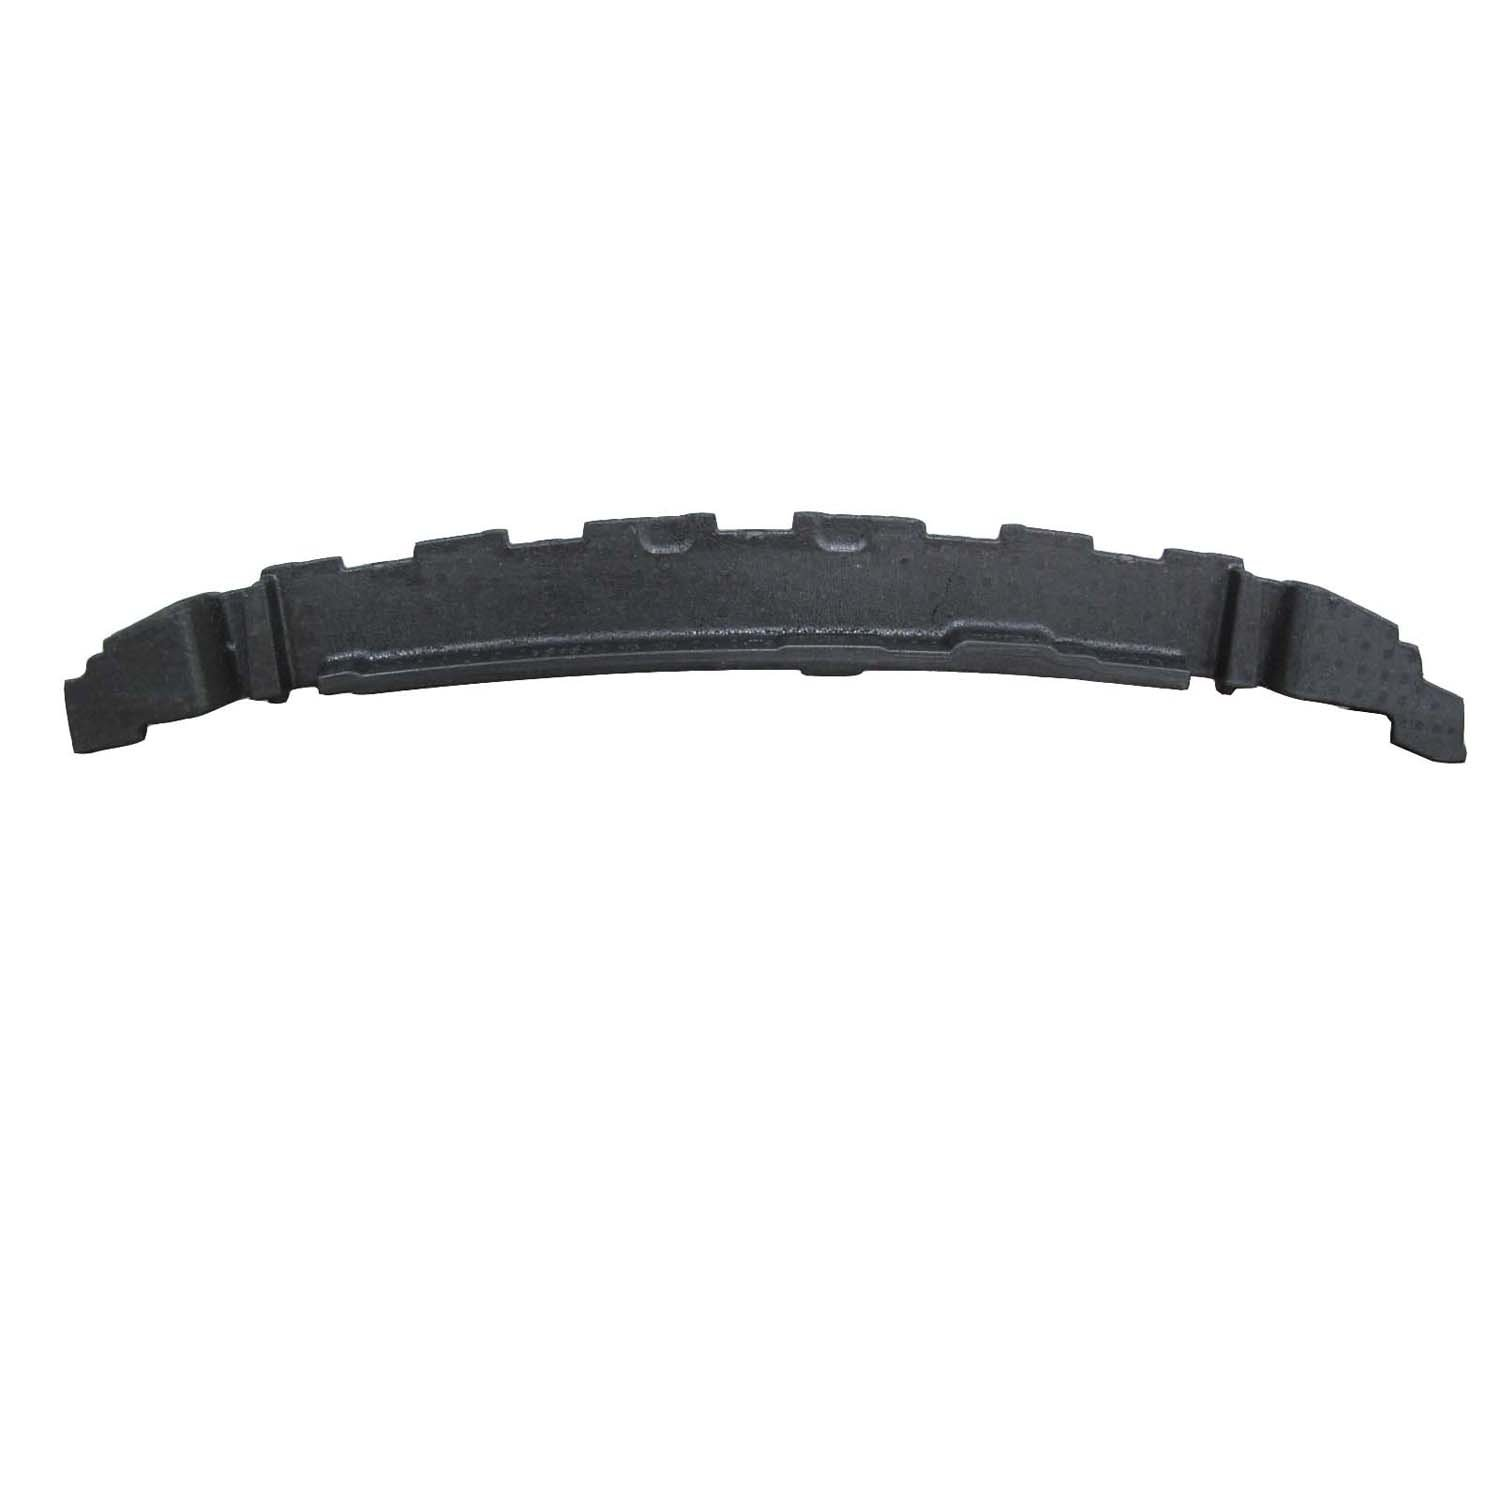 CPP CAPA Certified Bumper Impact Absorber TO1070207 for 16-17 Toyota RAV4